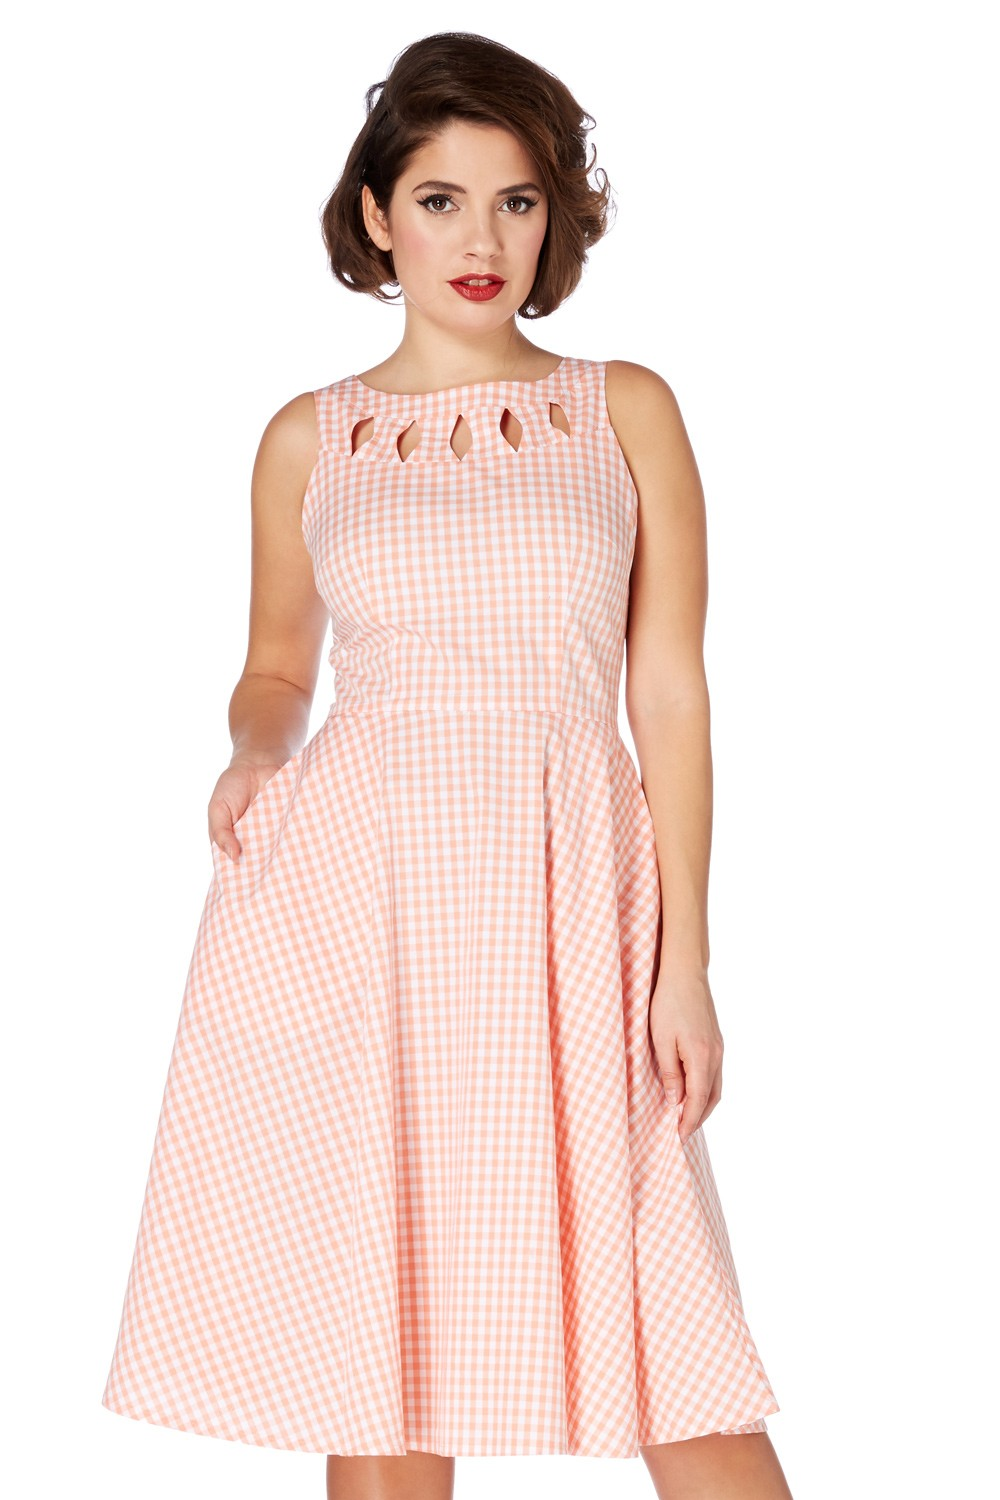 Donna 50s Gingham Dress | Vintage Inspired Fashion & Accessories